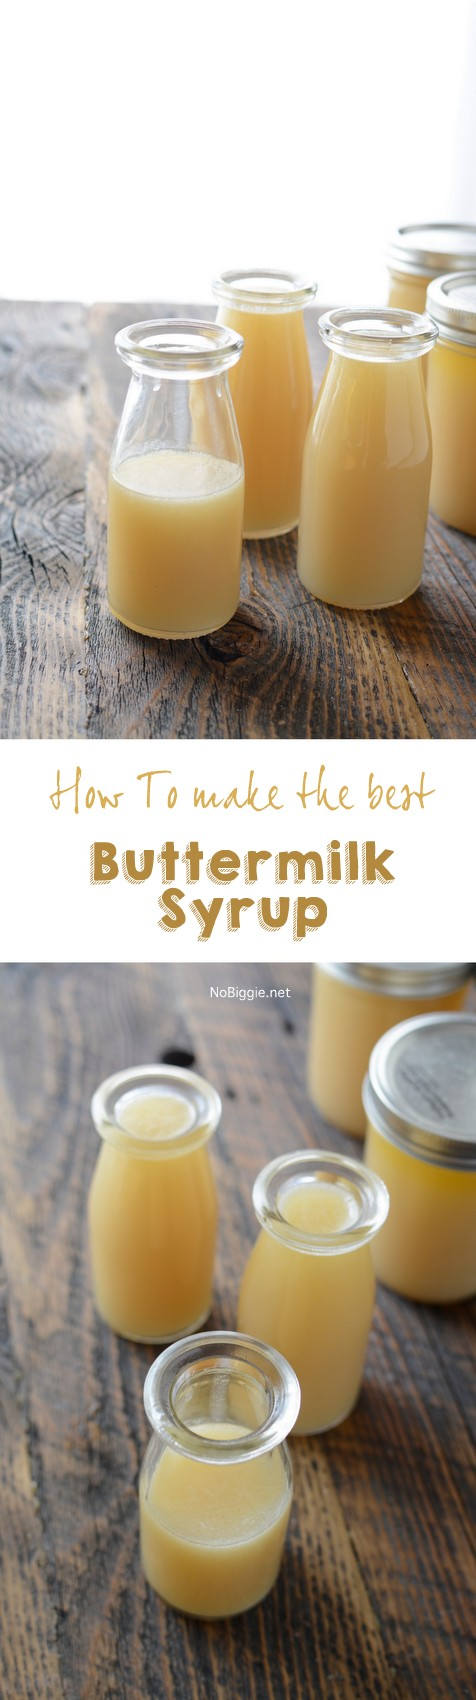 http://www.nobiggie.net/wp-content/uploads/2009/12/how-to-make-the-best-buttermilk-syrup-NoBiggie.net_.jpg